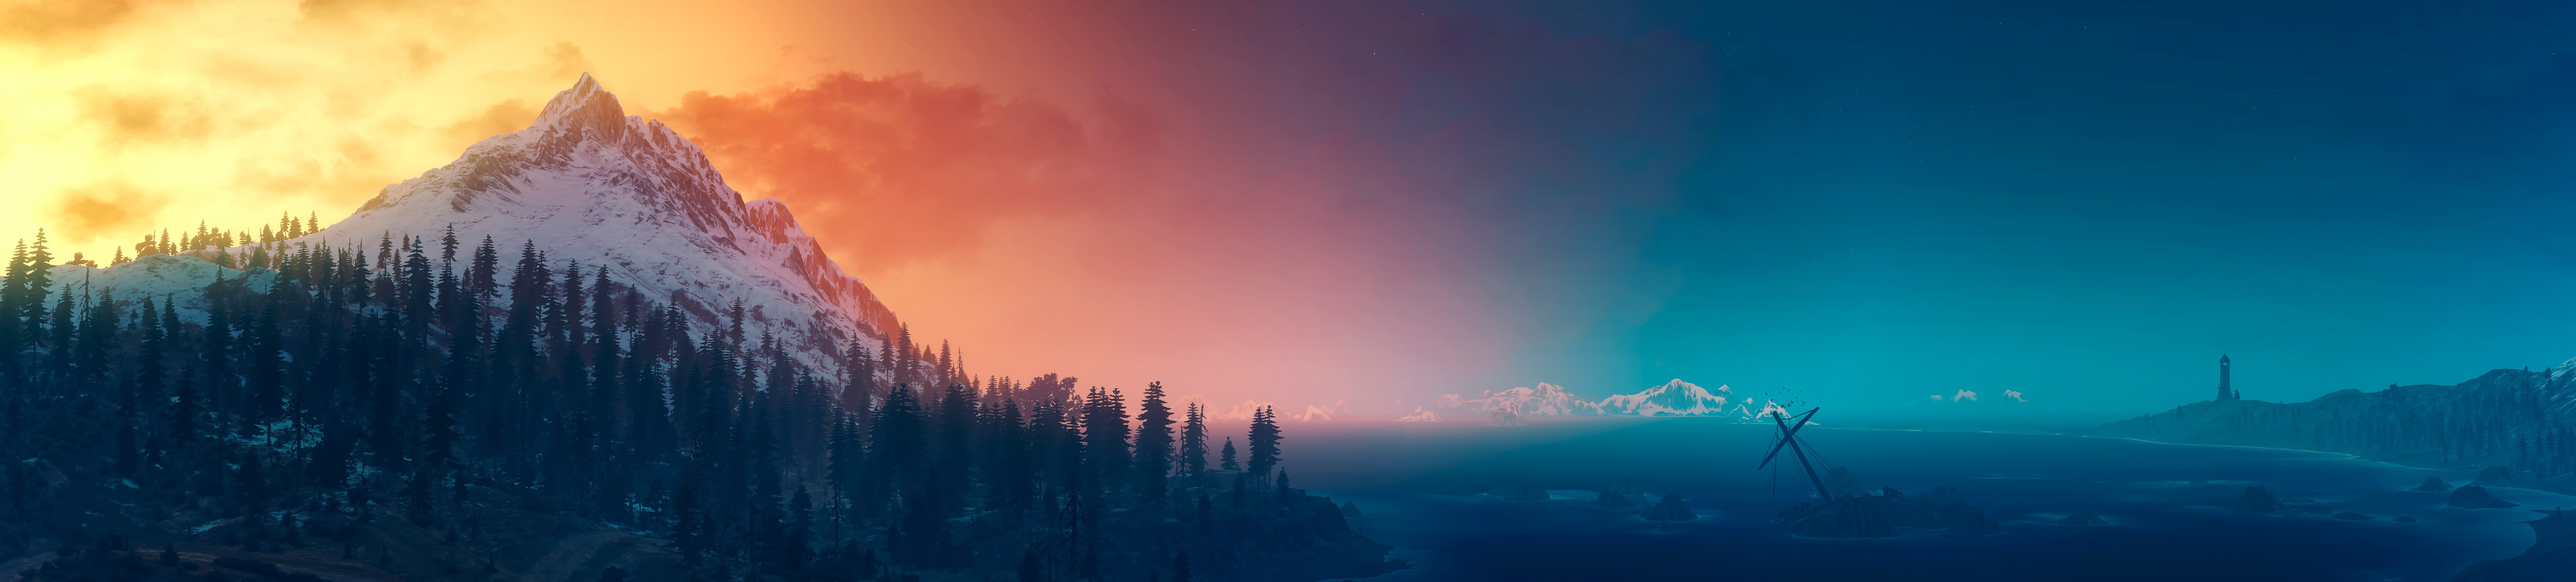 Panoramic Hd Wallpapers Posted By Ryan Johnson